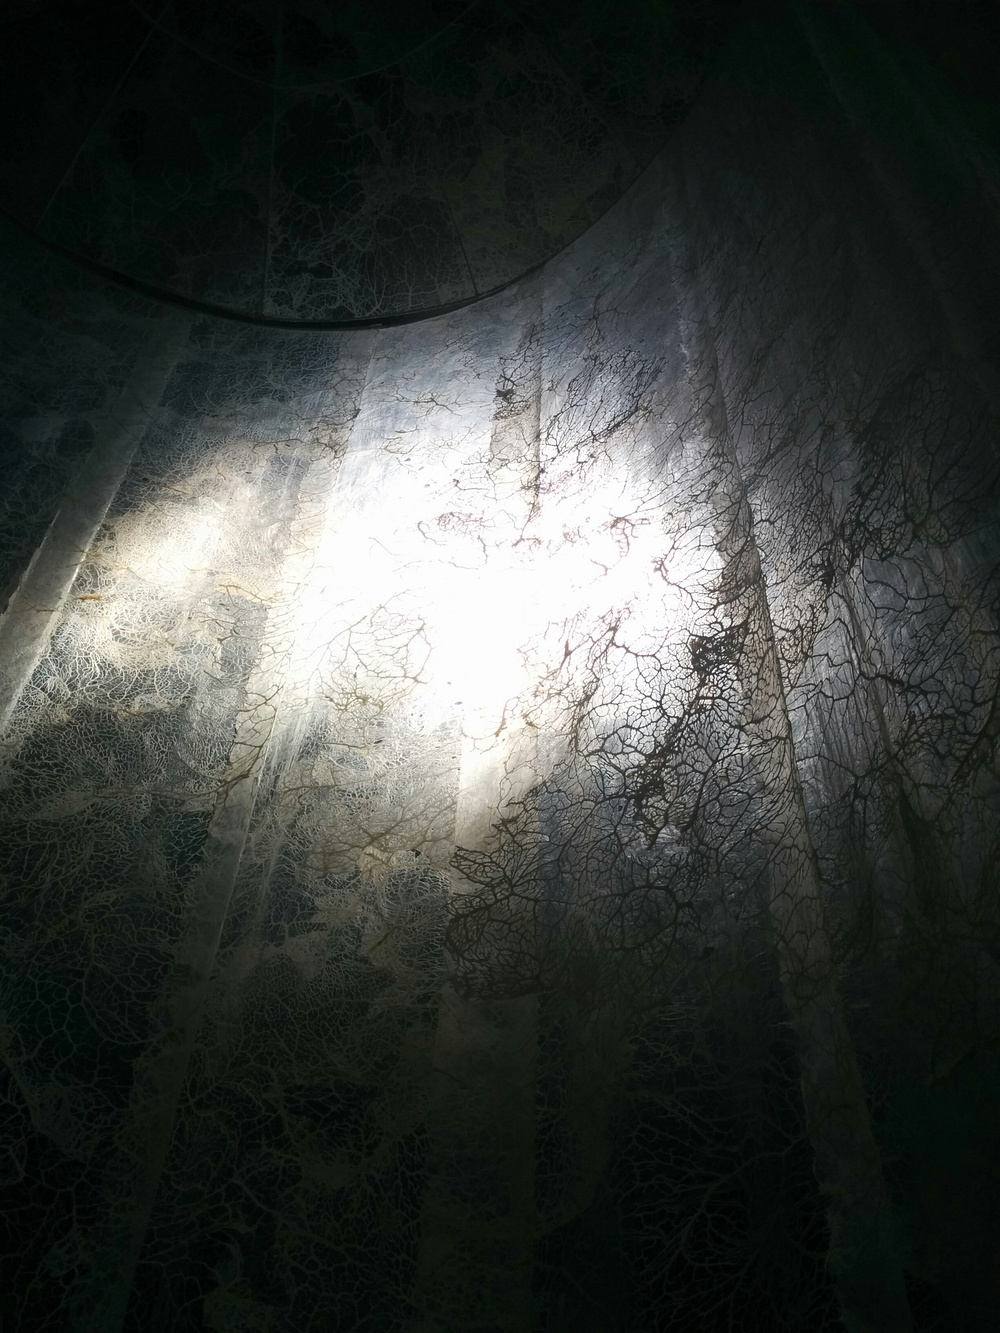 Elpida Hadzi-Vasileva, Fragility (Detail showing light)